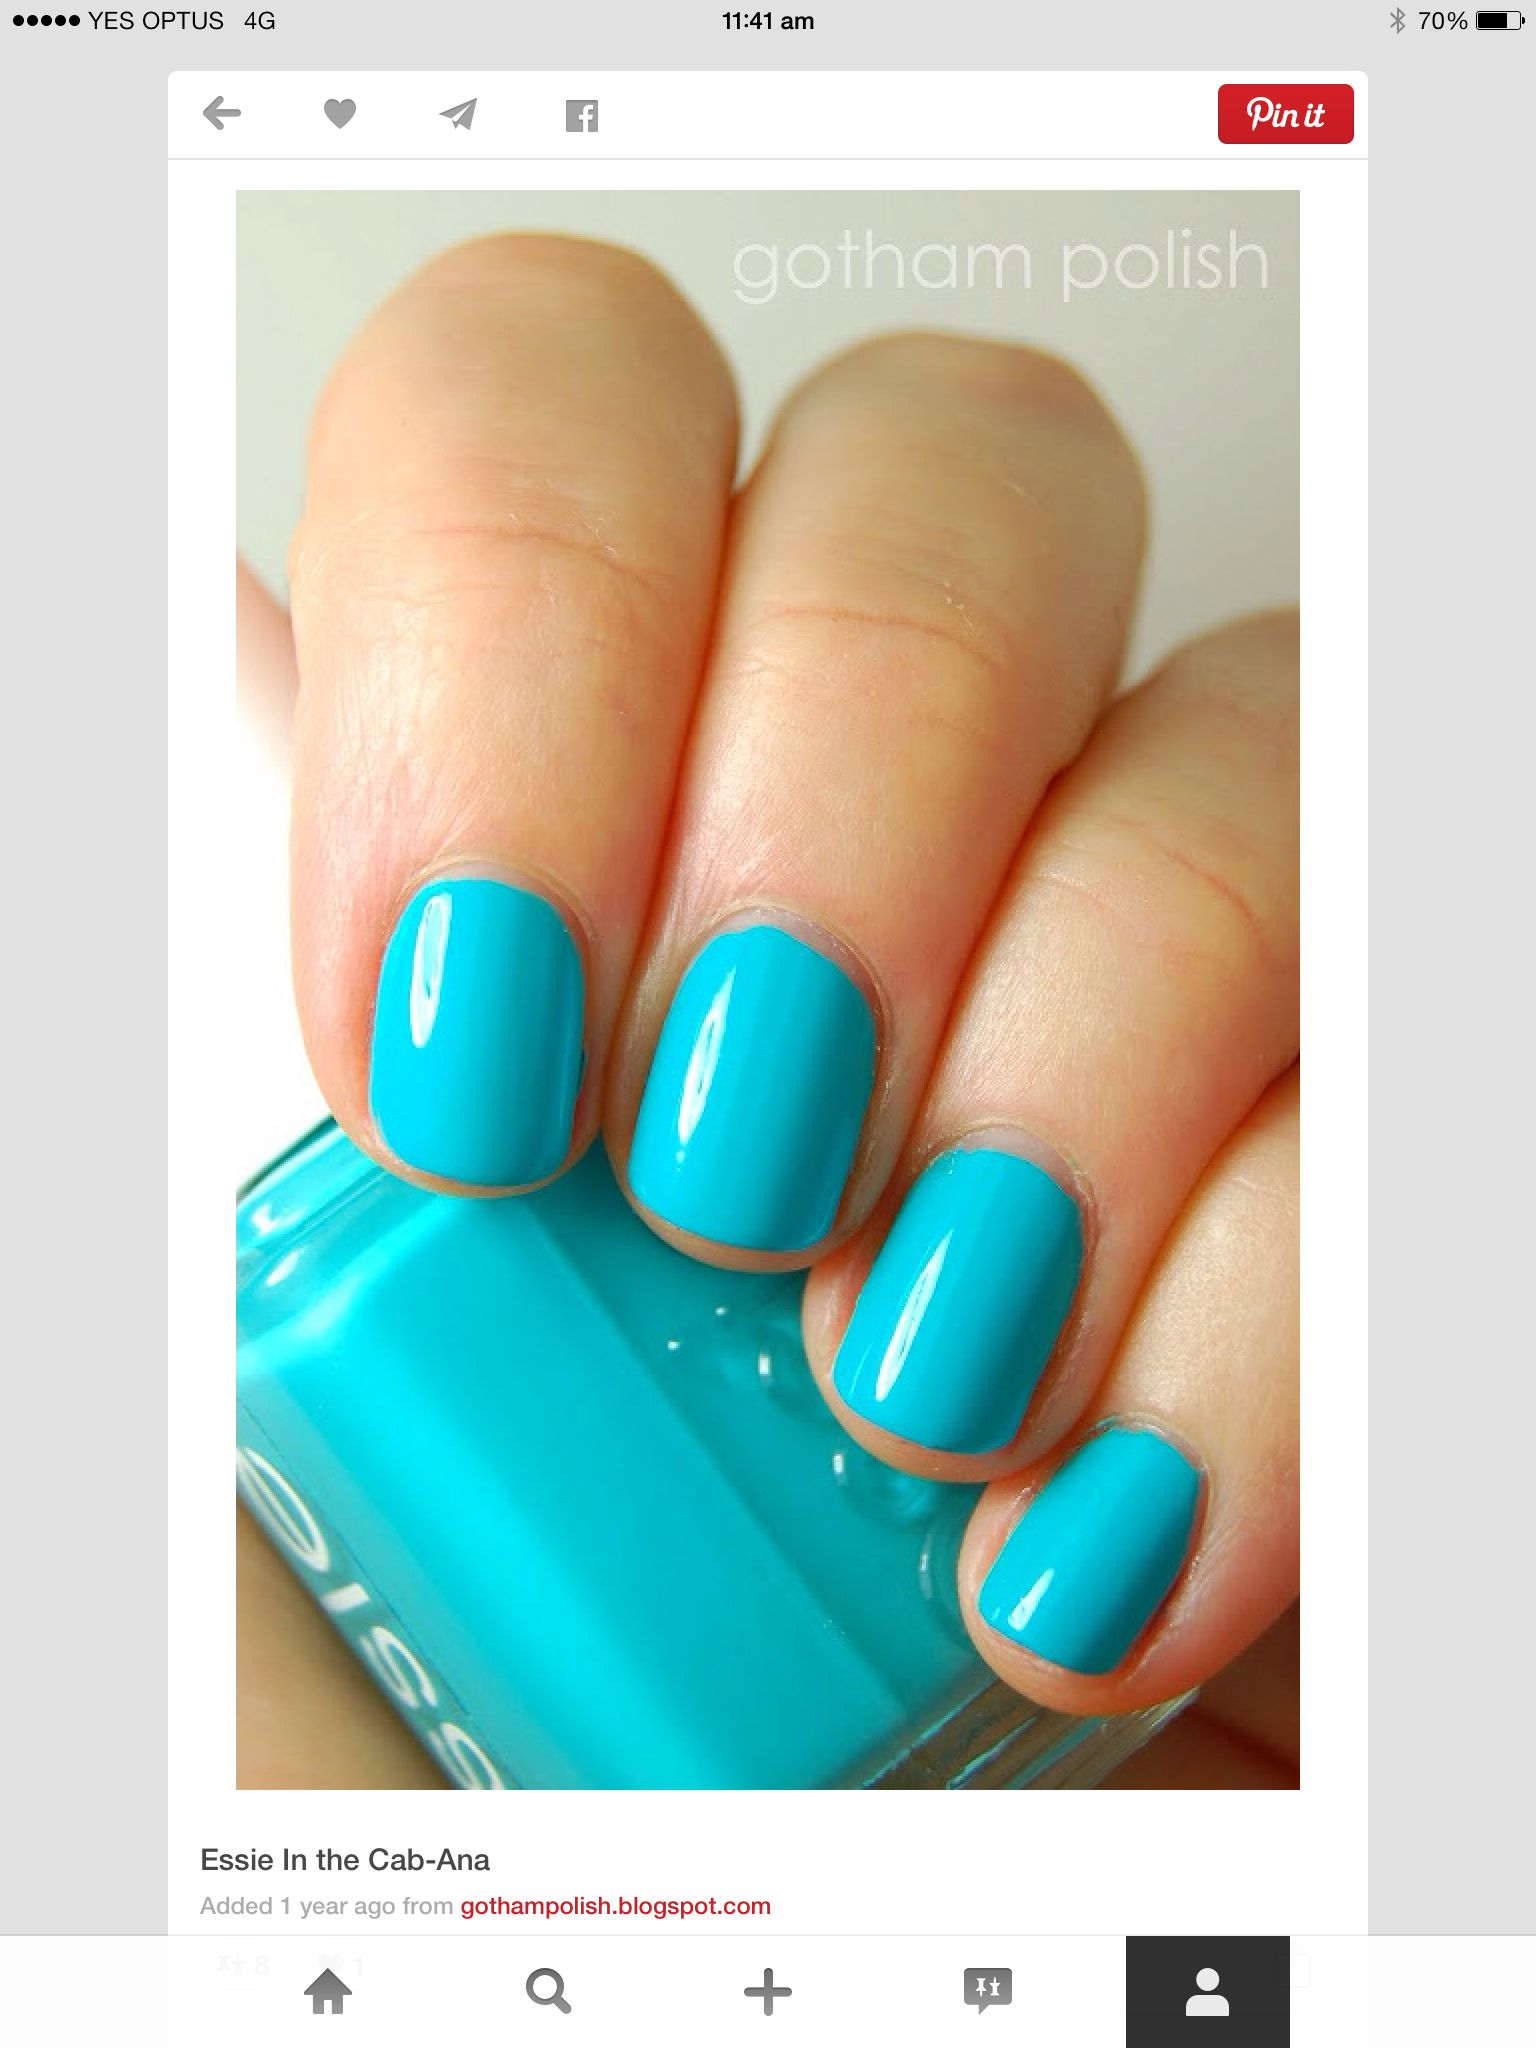 Perfect for summer | Nails and Make Up | Pinterest